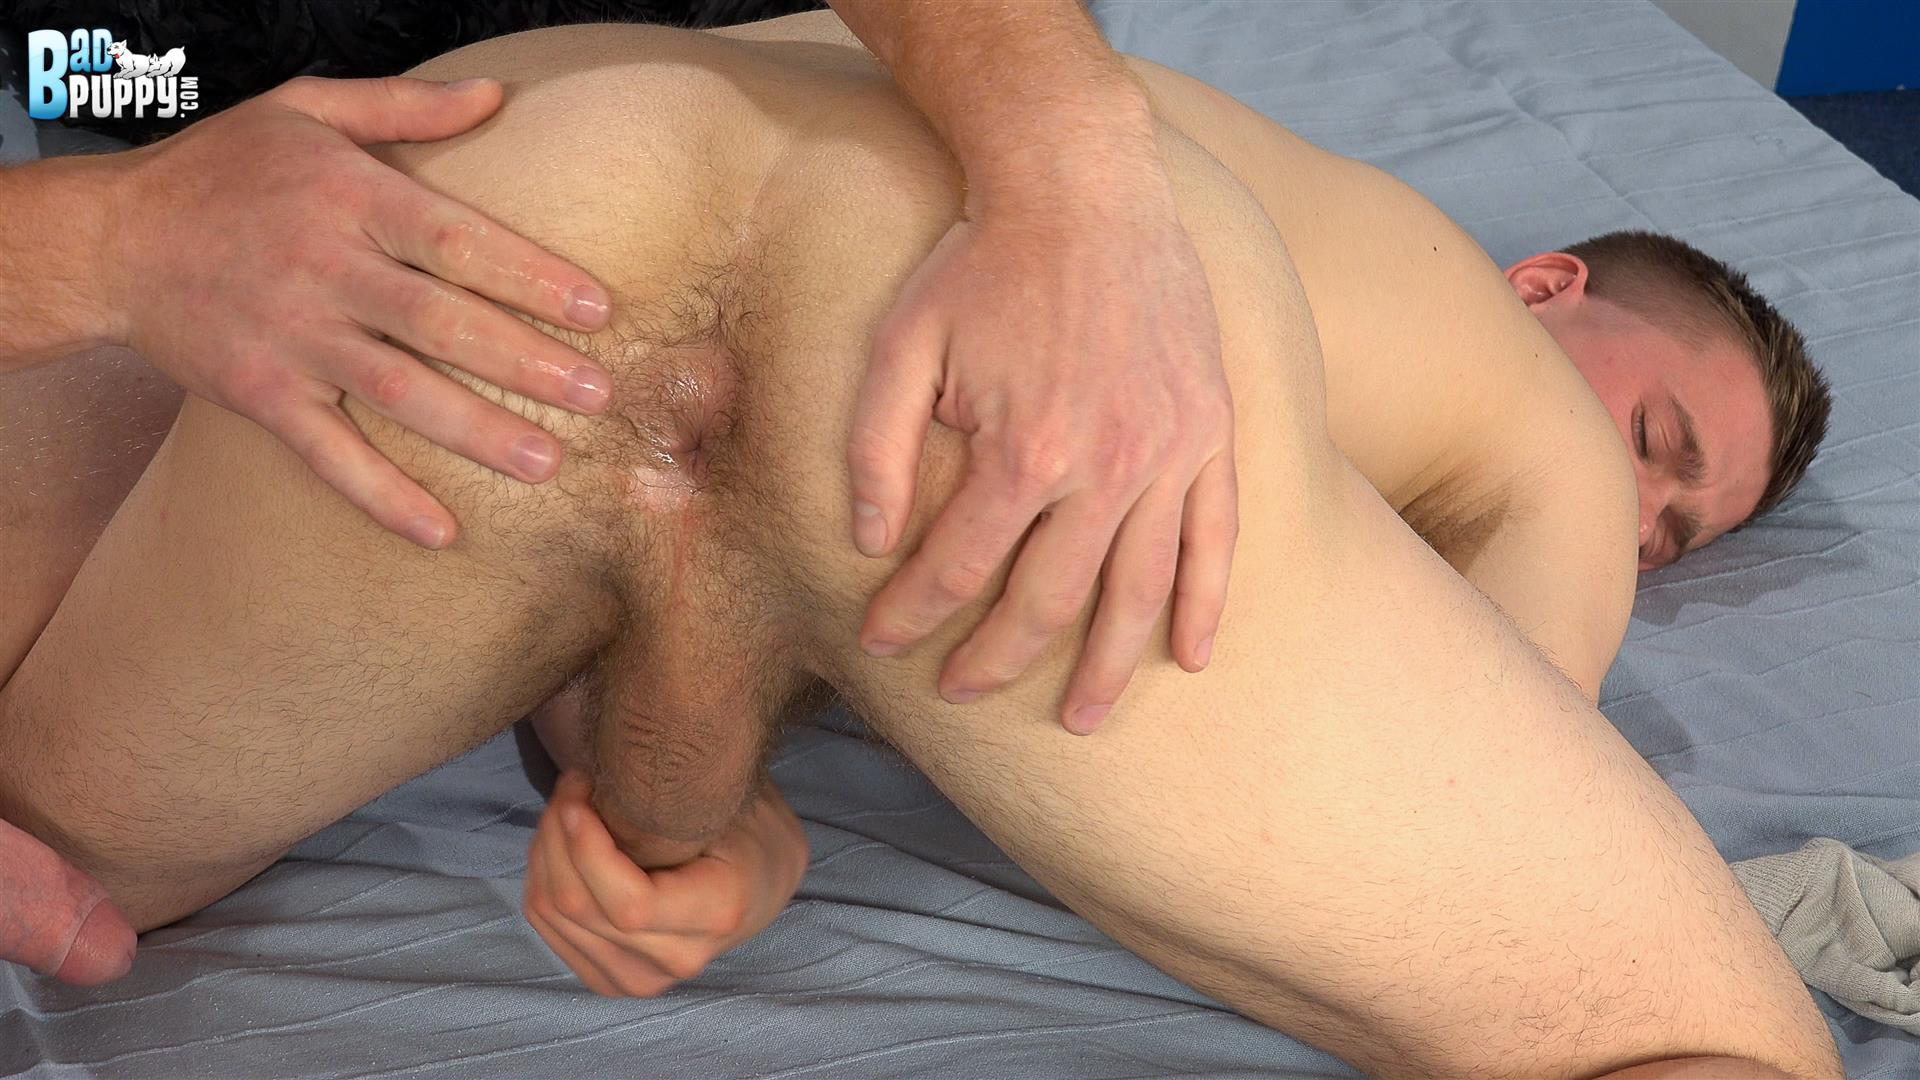 A big cocked straight guy plays with vibrator and cums